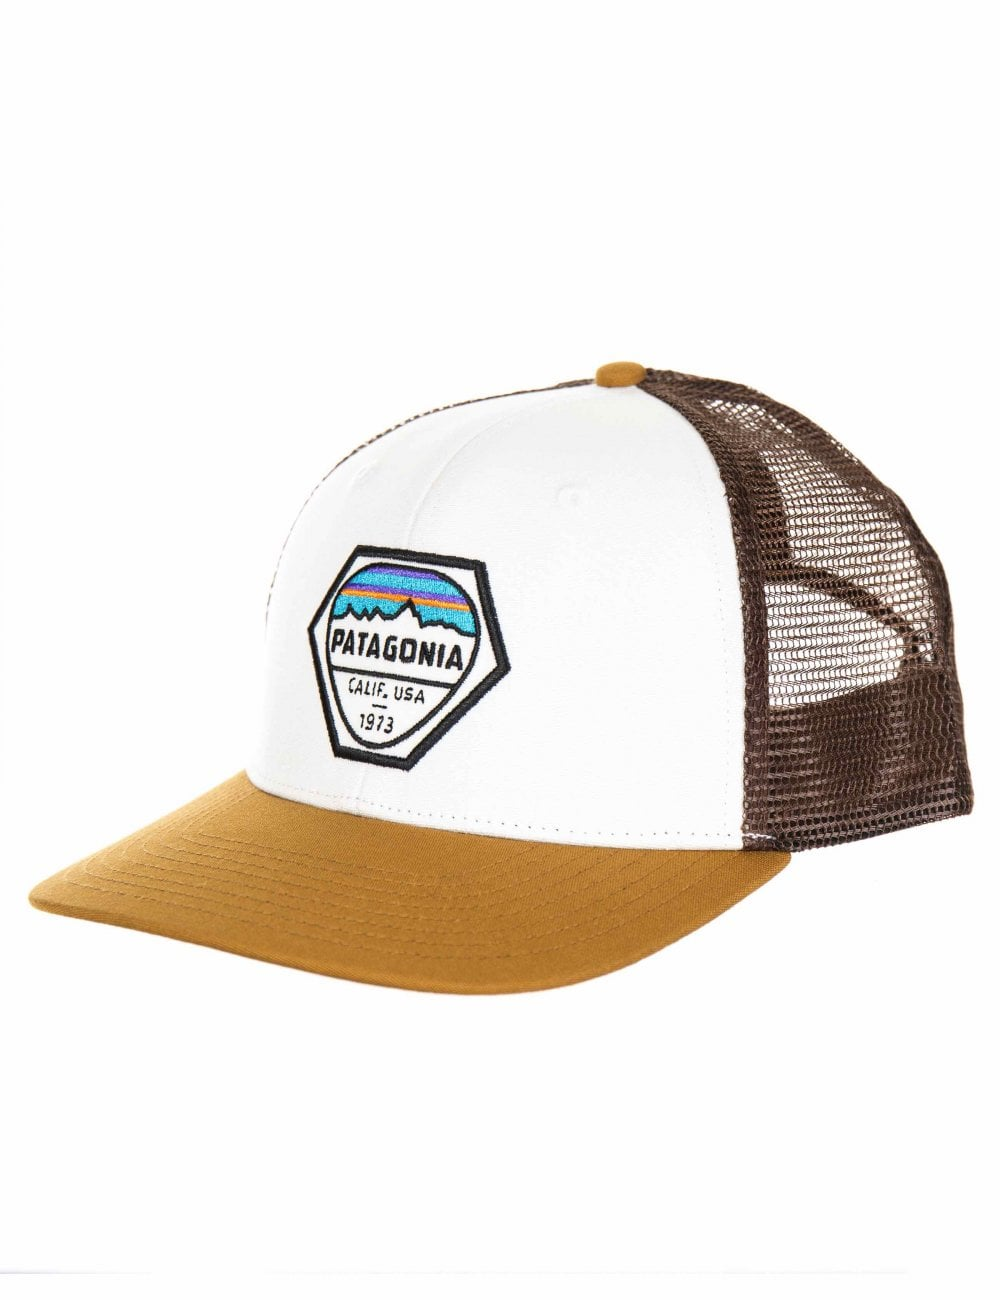 4271a459071ce Patagonia Fitz Roy Hex Trucker Hat - White - Hat Shop from Fat ...